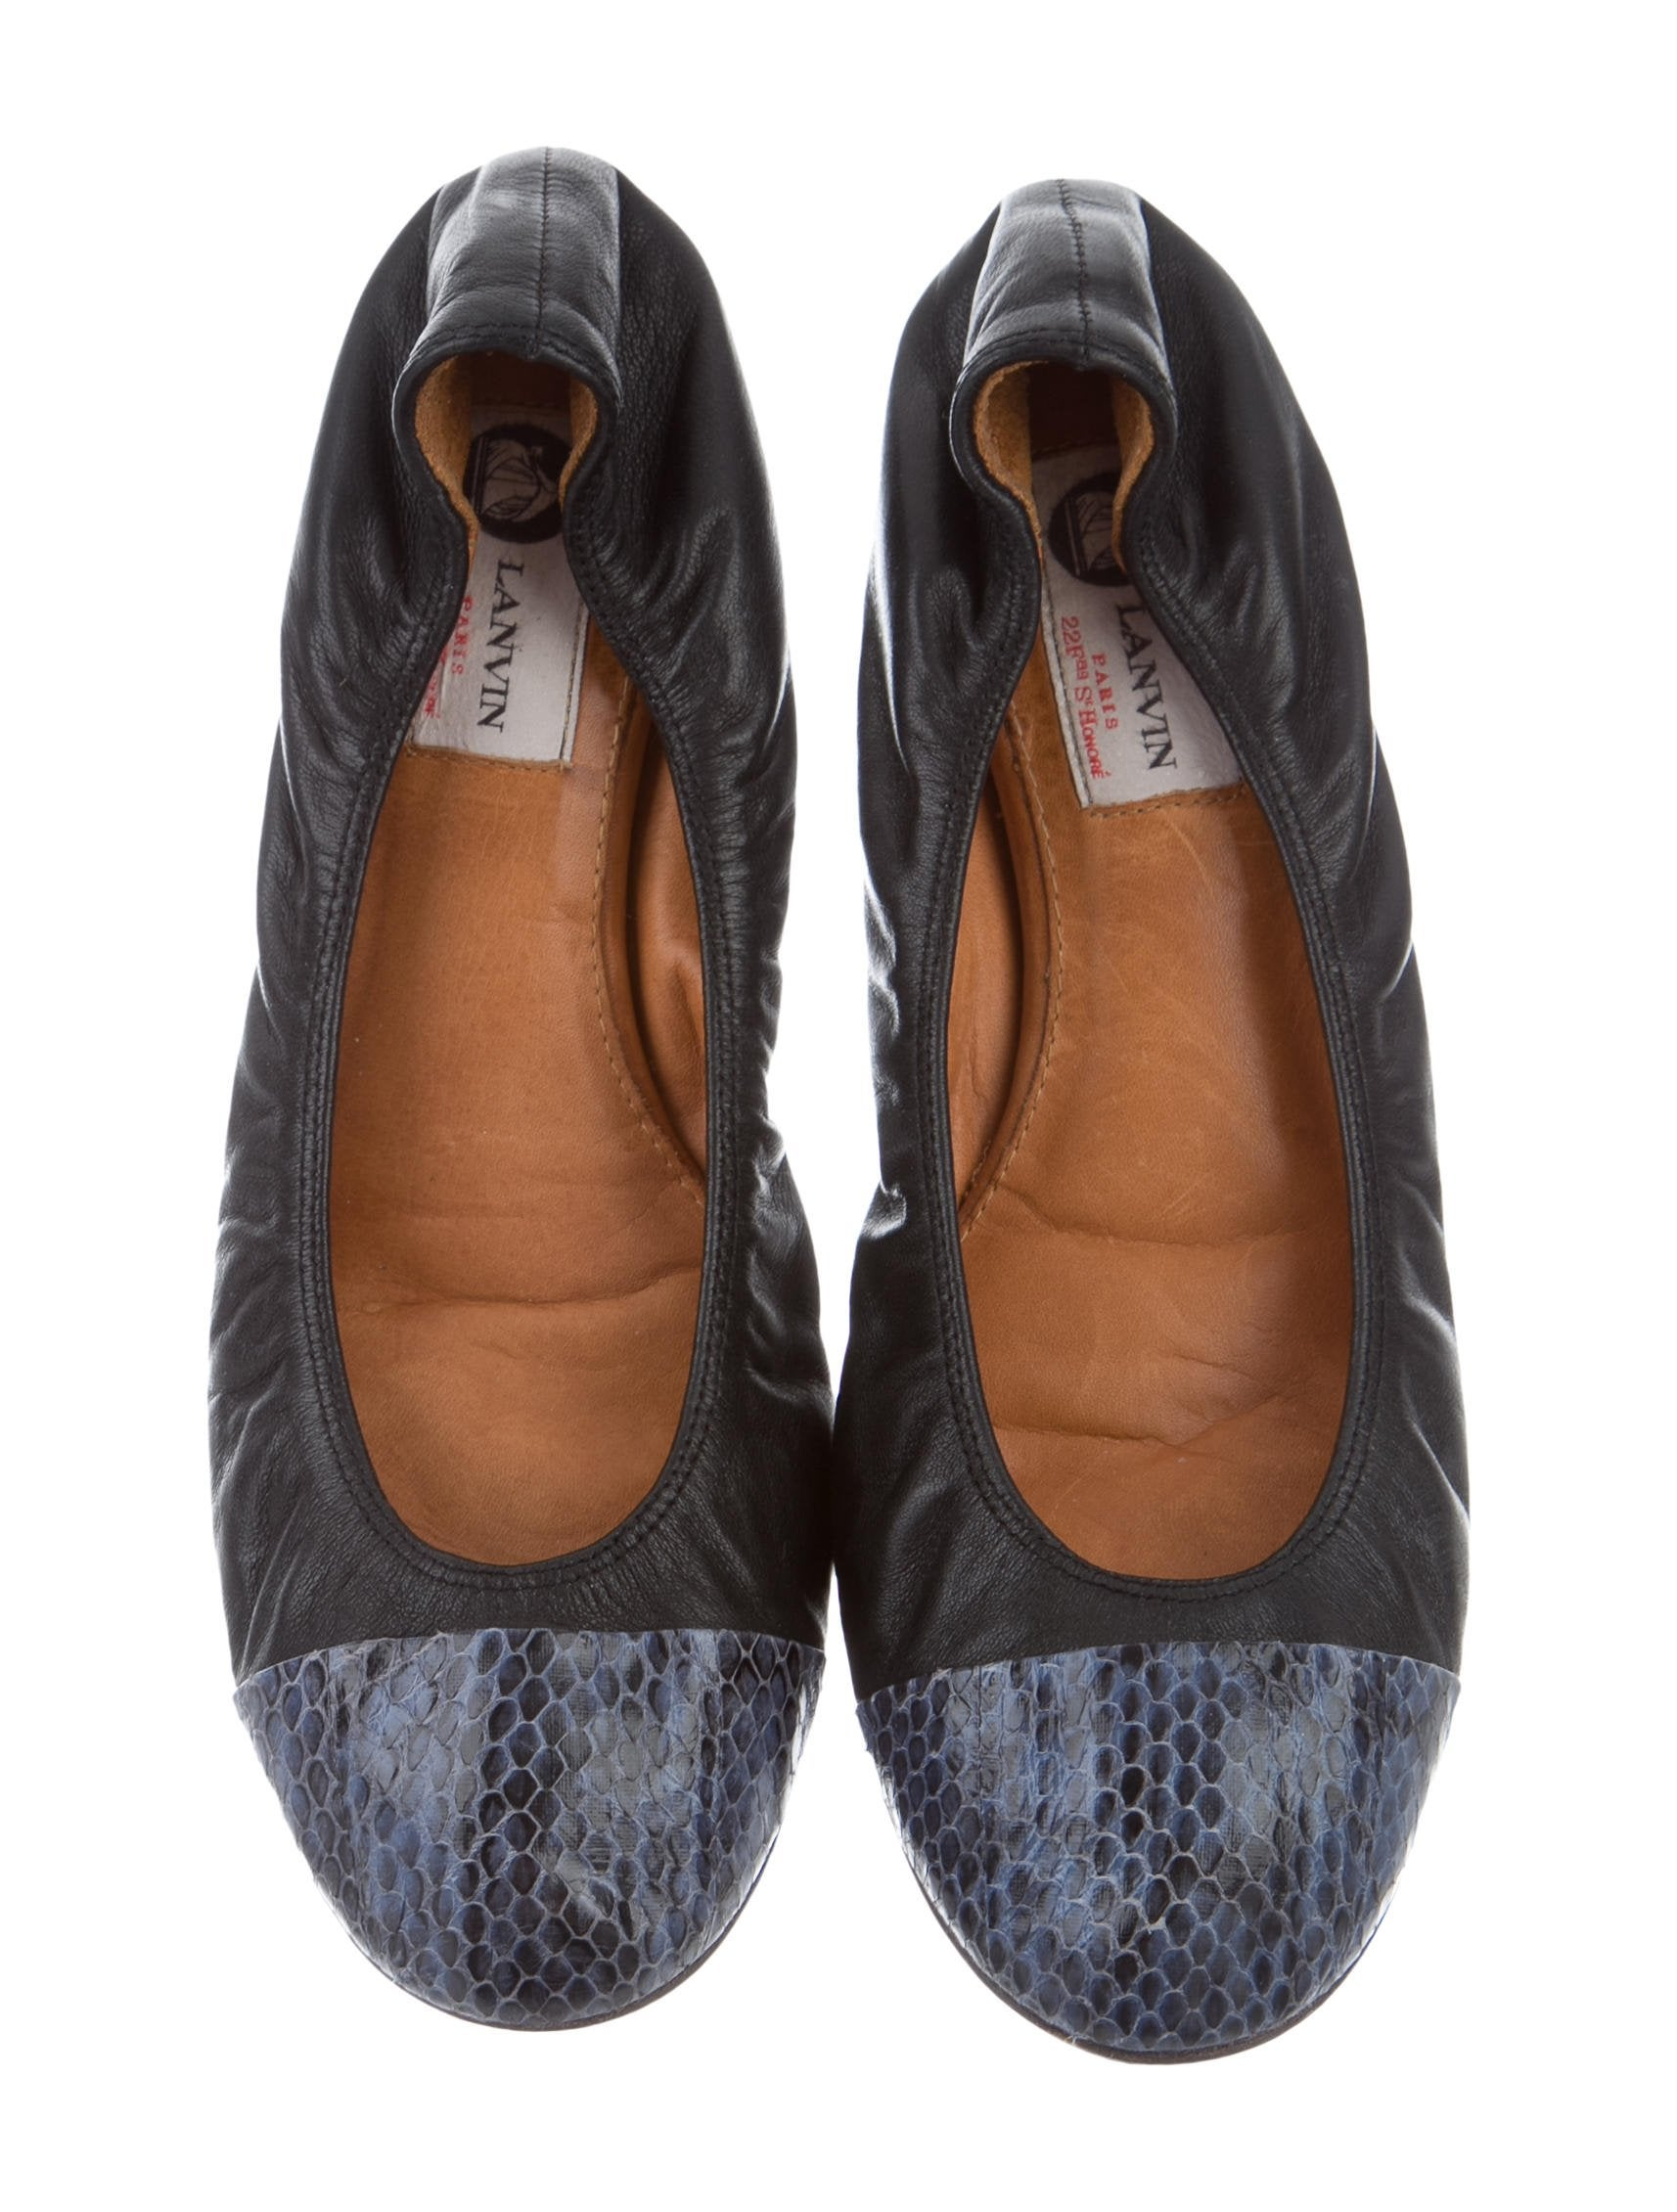 Shop fishingrodde.cf's huge selection of Best Snakeskin - Over 20 styles available. FREE Shipping & Exchanges, and a % price guarantee! Free Shipping. No Minimum. Advanced Search. Search fishingrodde.cf Summit White Mountain Kendrick Ballet Flat (Women's) 6 colors available. $ - $ $ - $ up to 64% off. Add to Cart. Quick View. New!